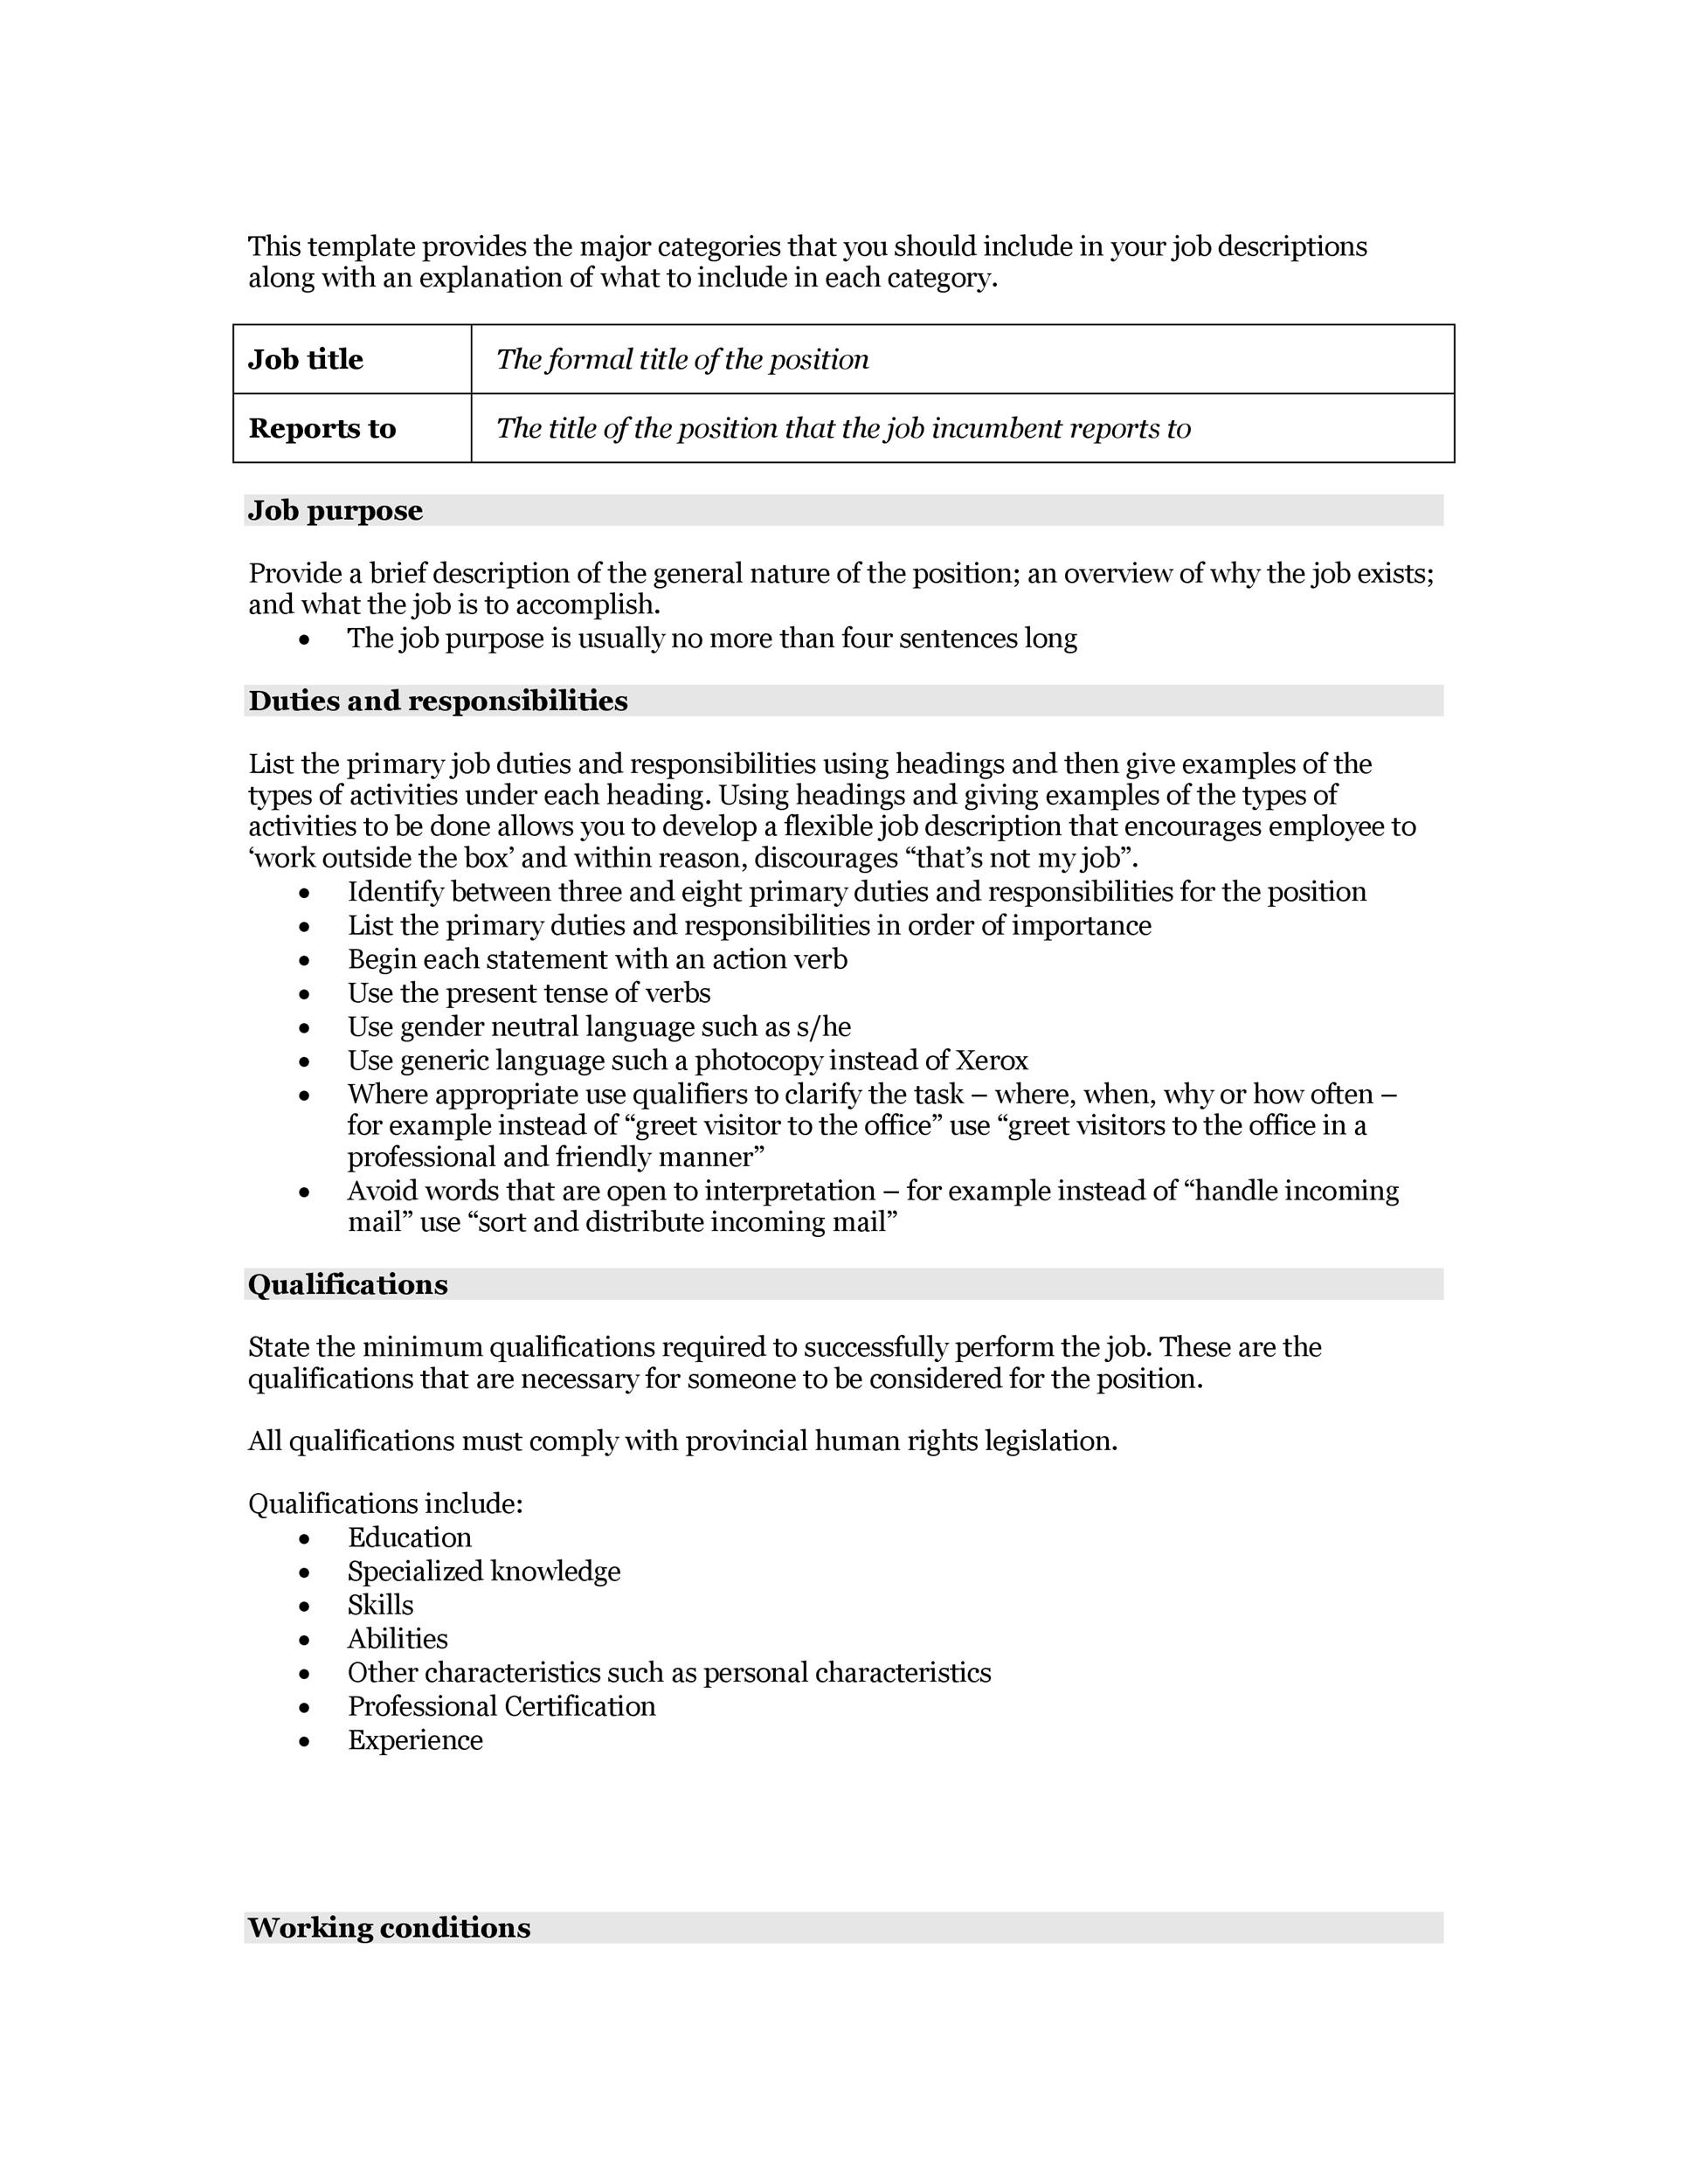 Job Description Template 04